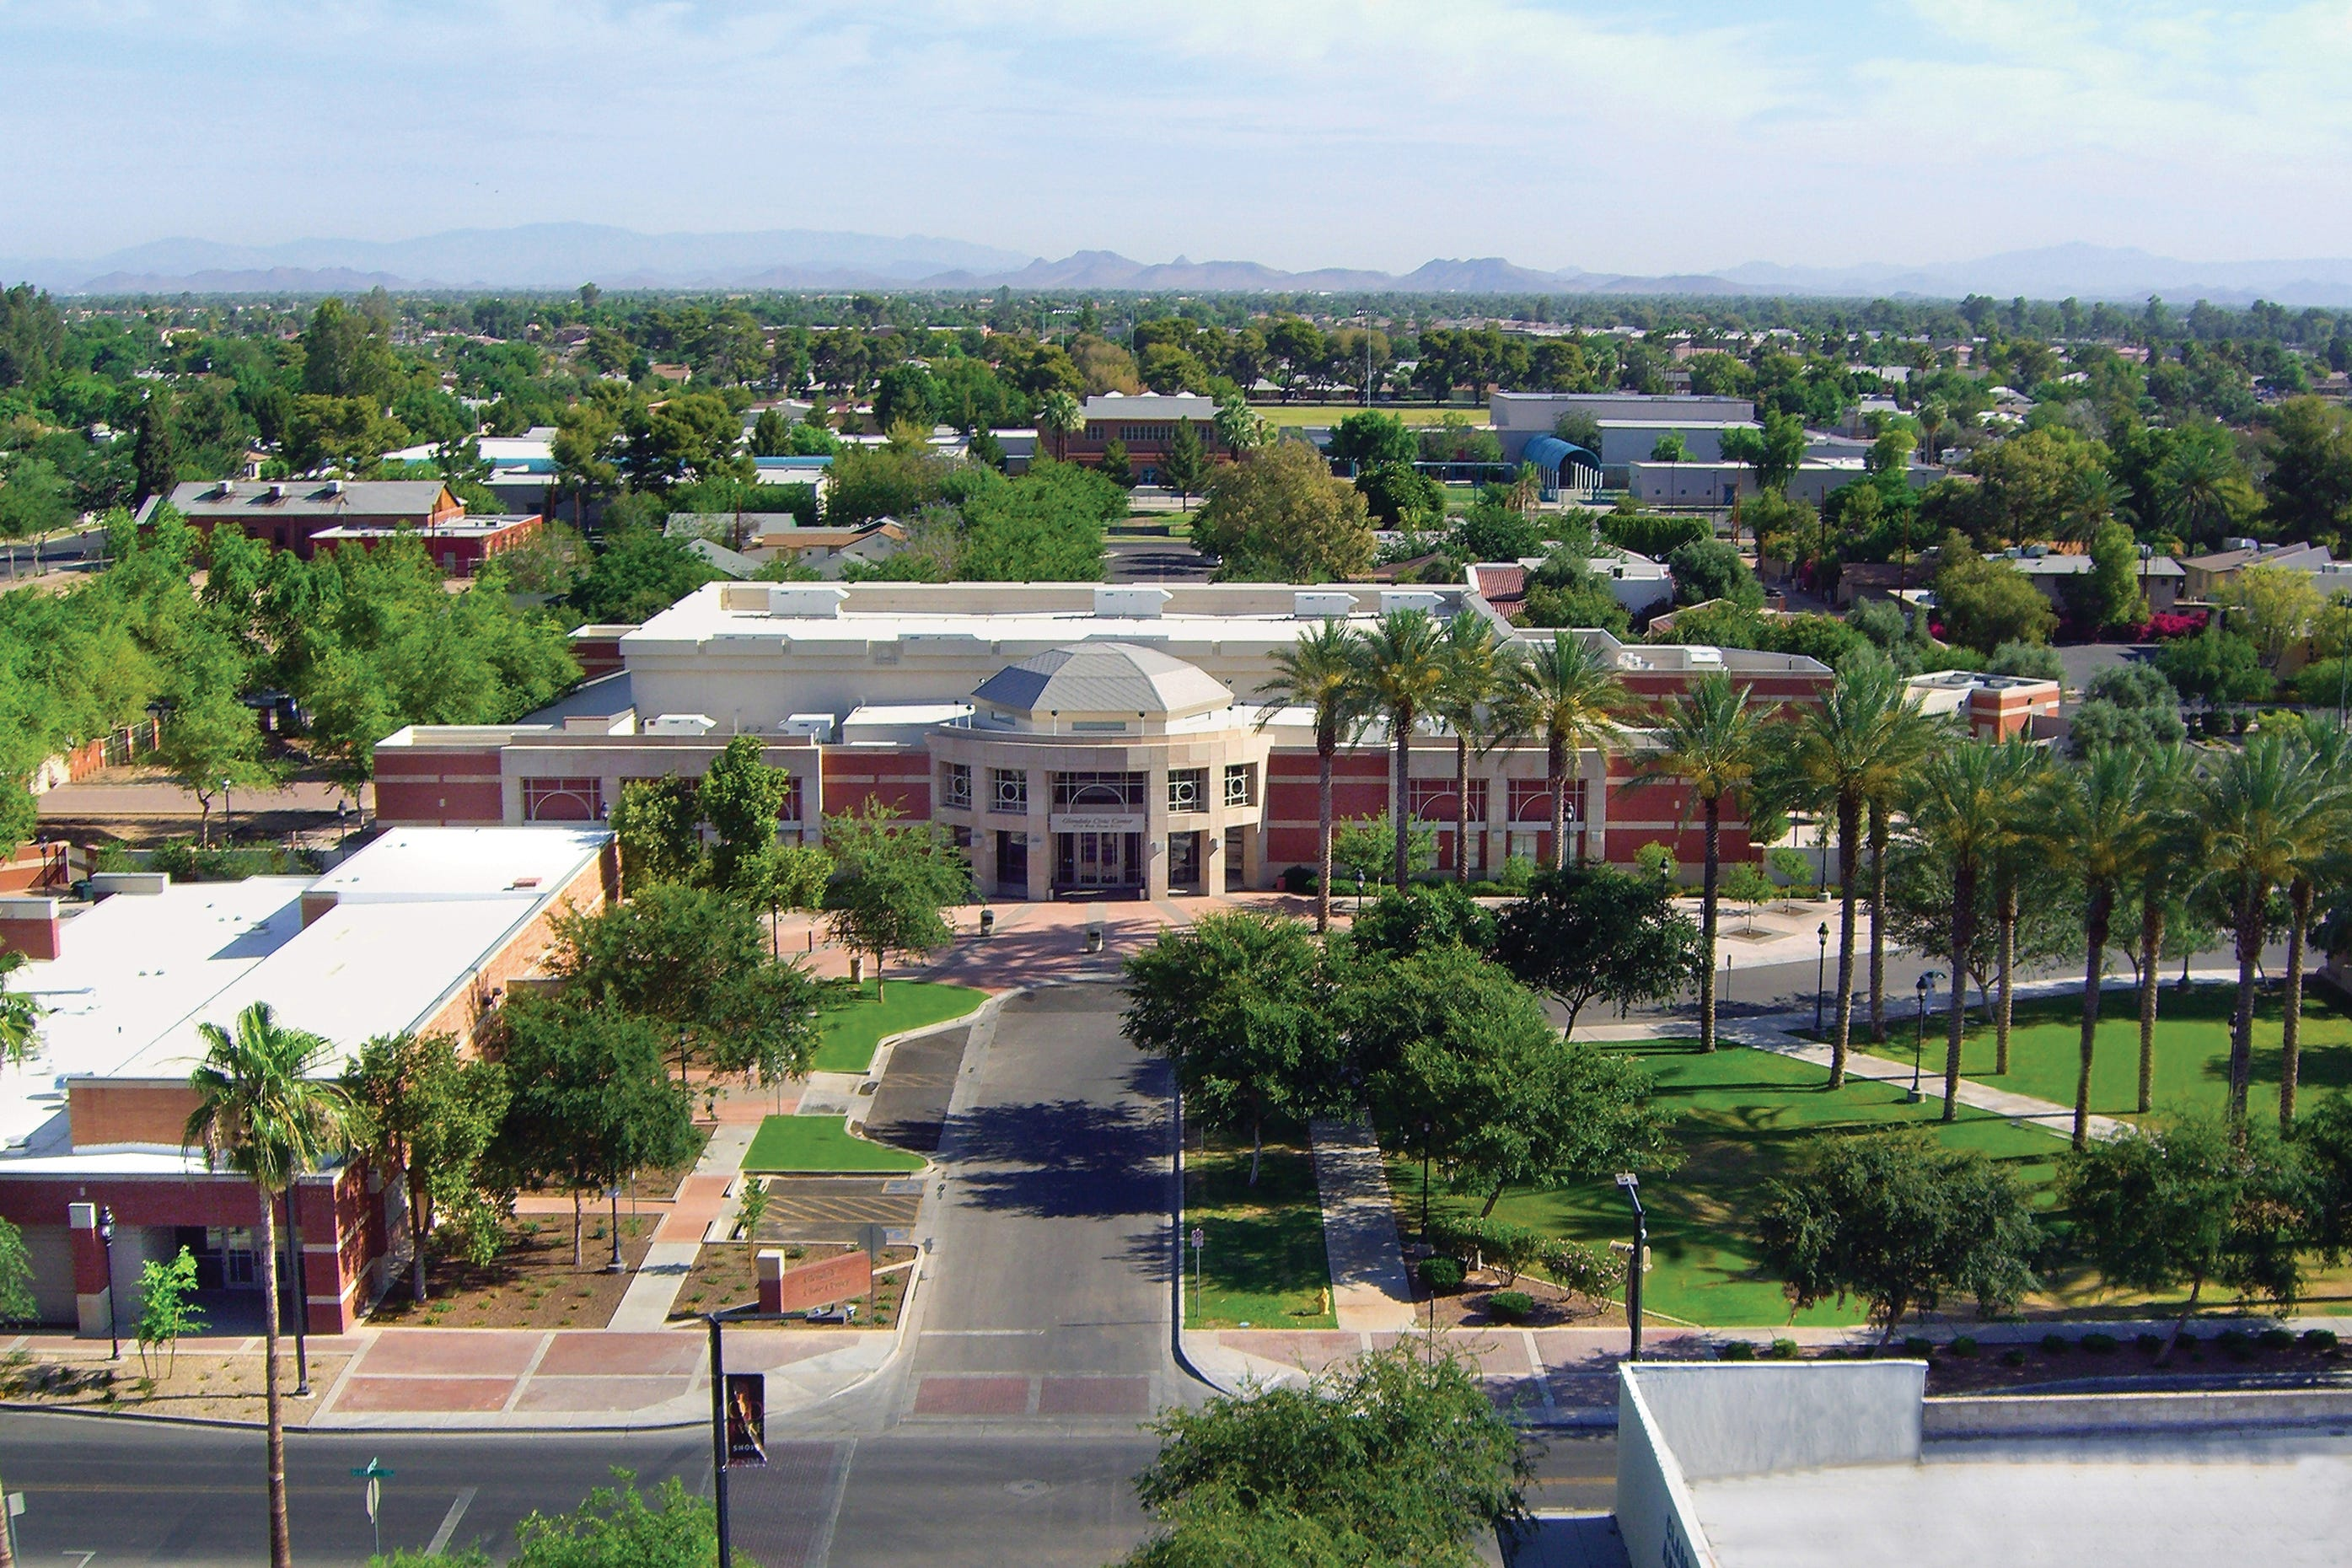 Phoenix-area cities want to offer space for events, but they're all losing money doing it | AZ Central